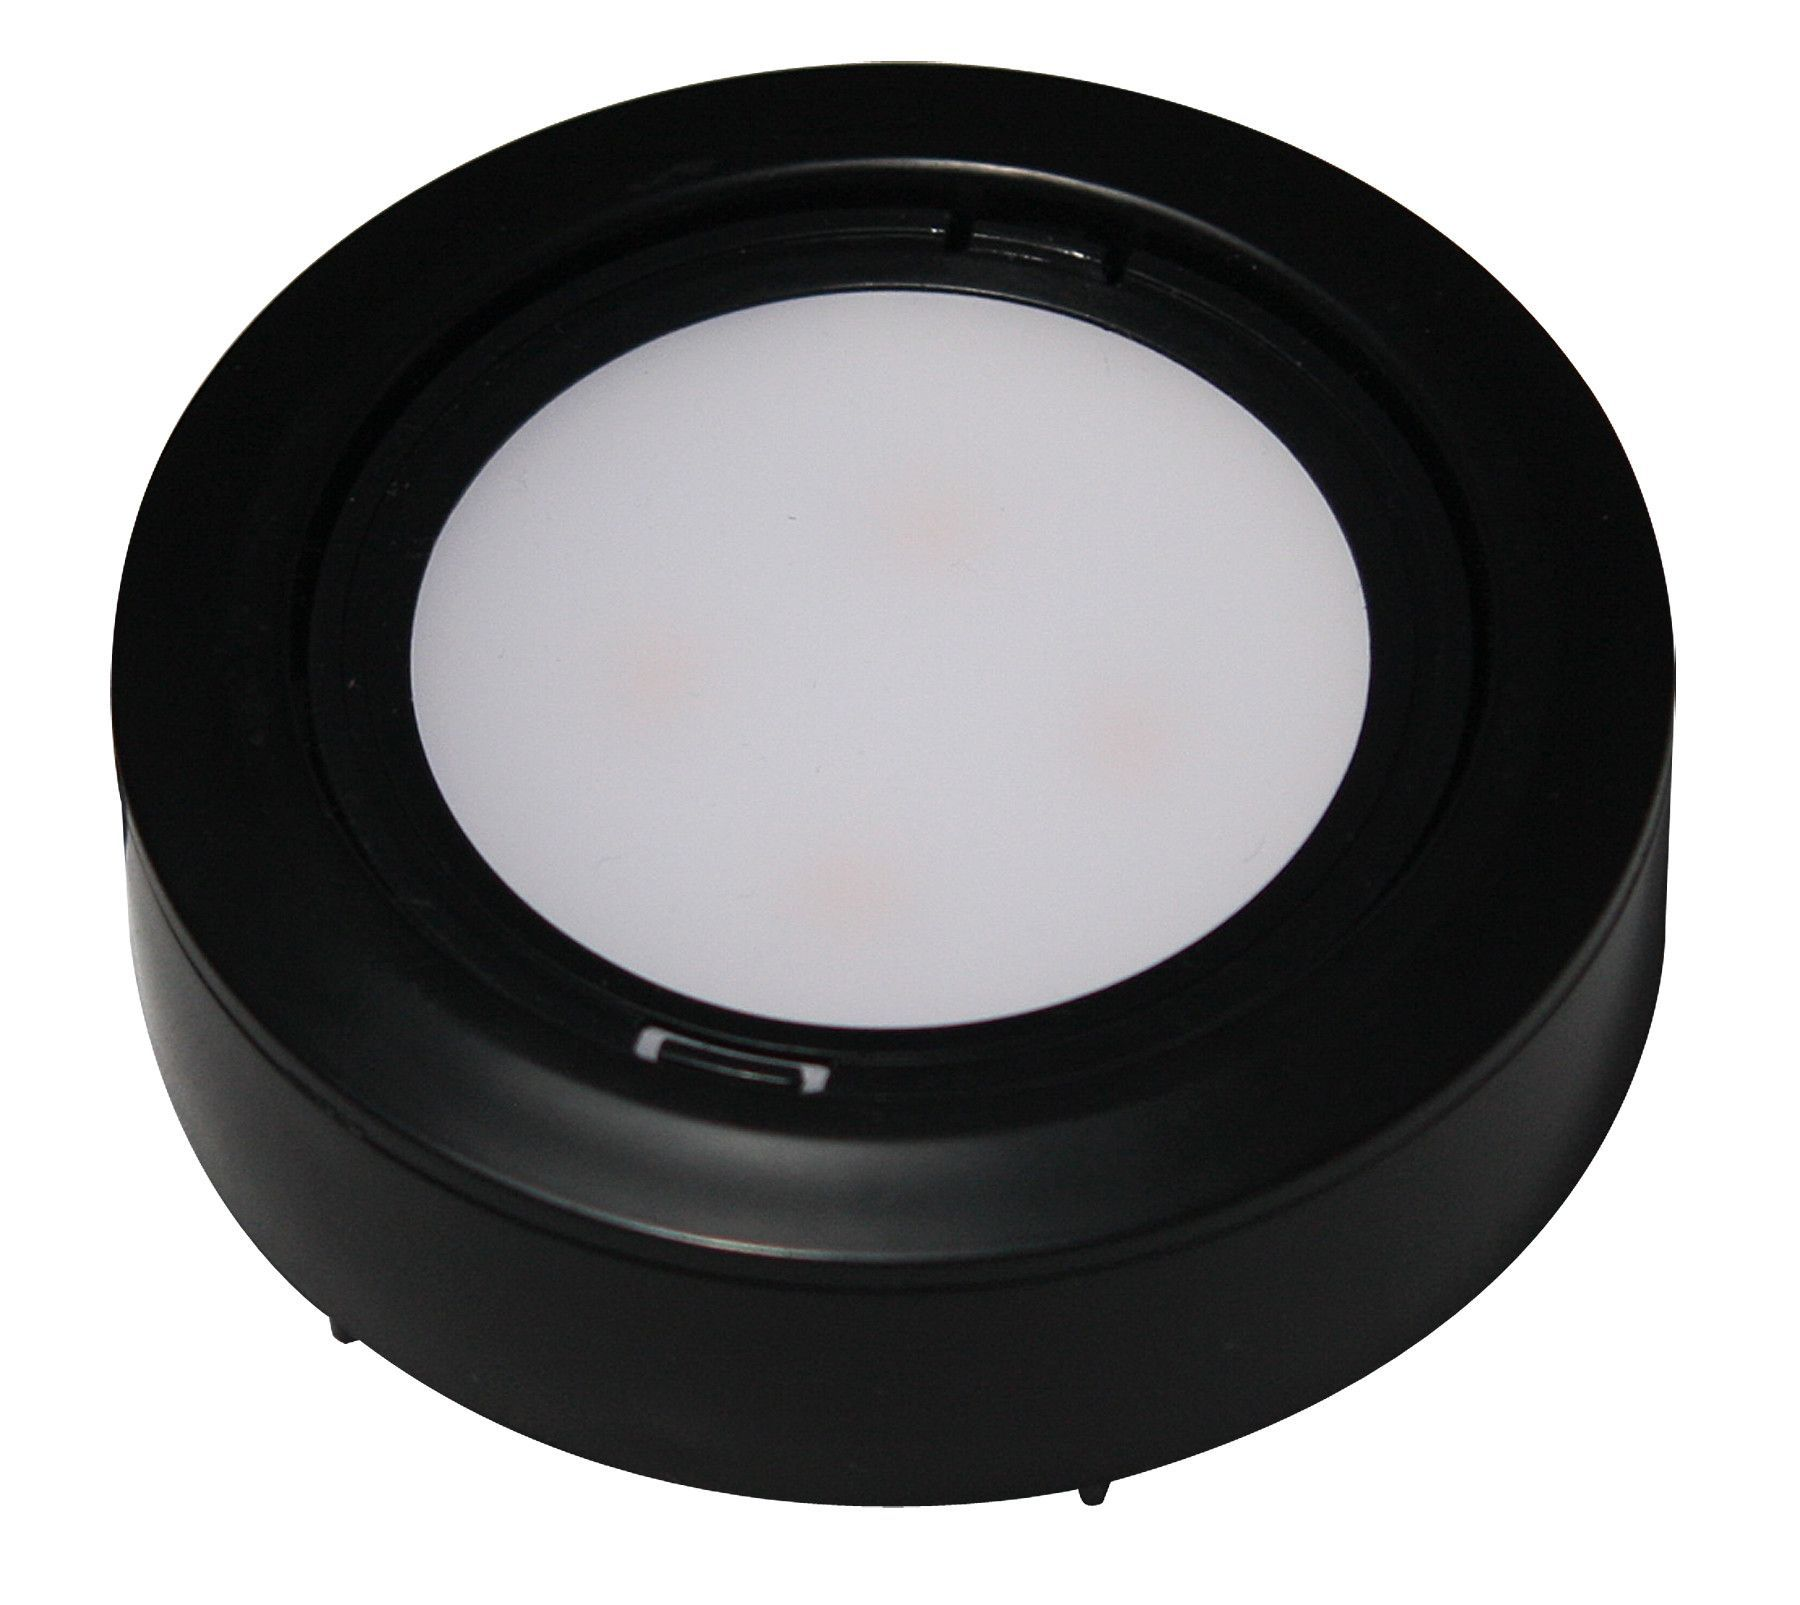 120v led puck light products pinterest puck lights led puck 120v led puck light aloadofball Choice Image